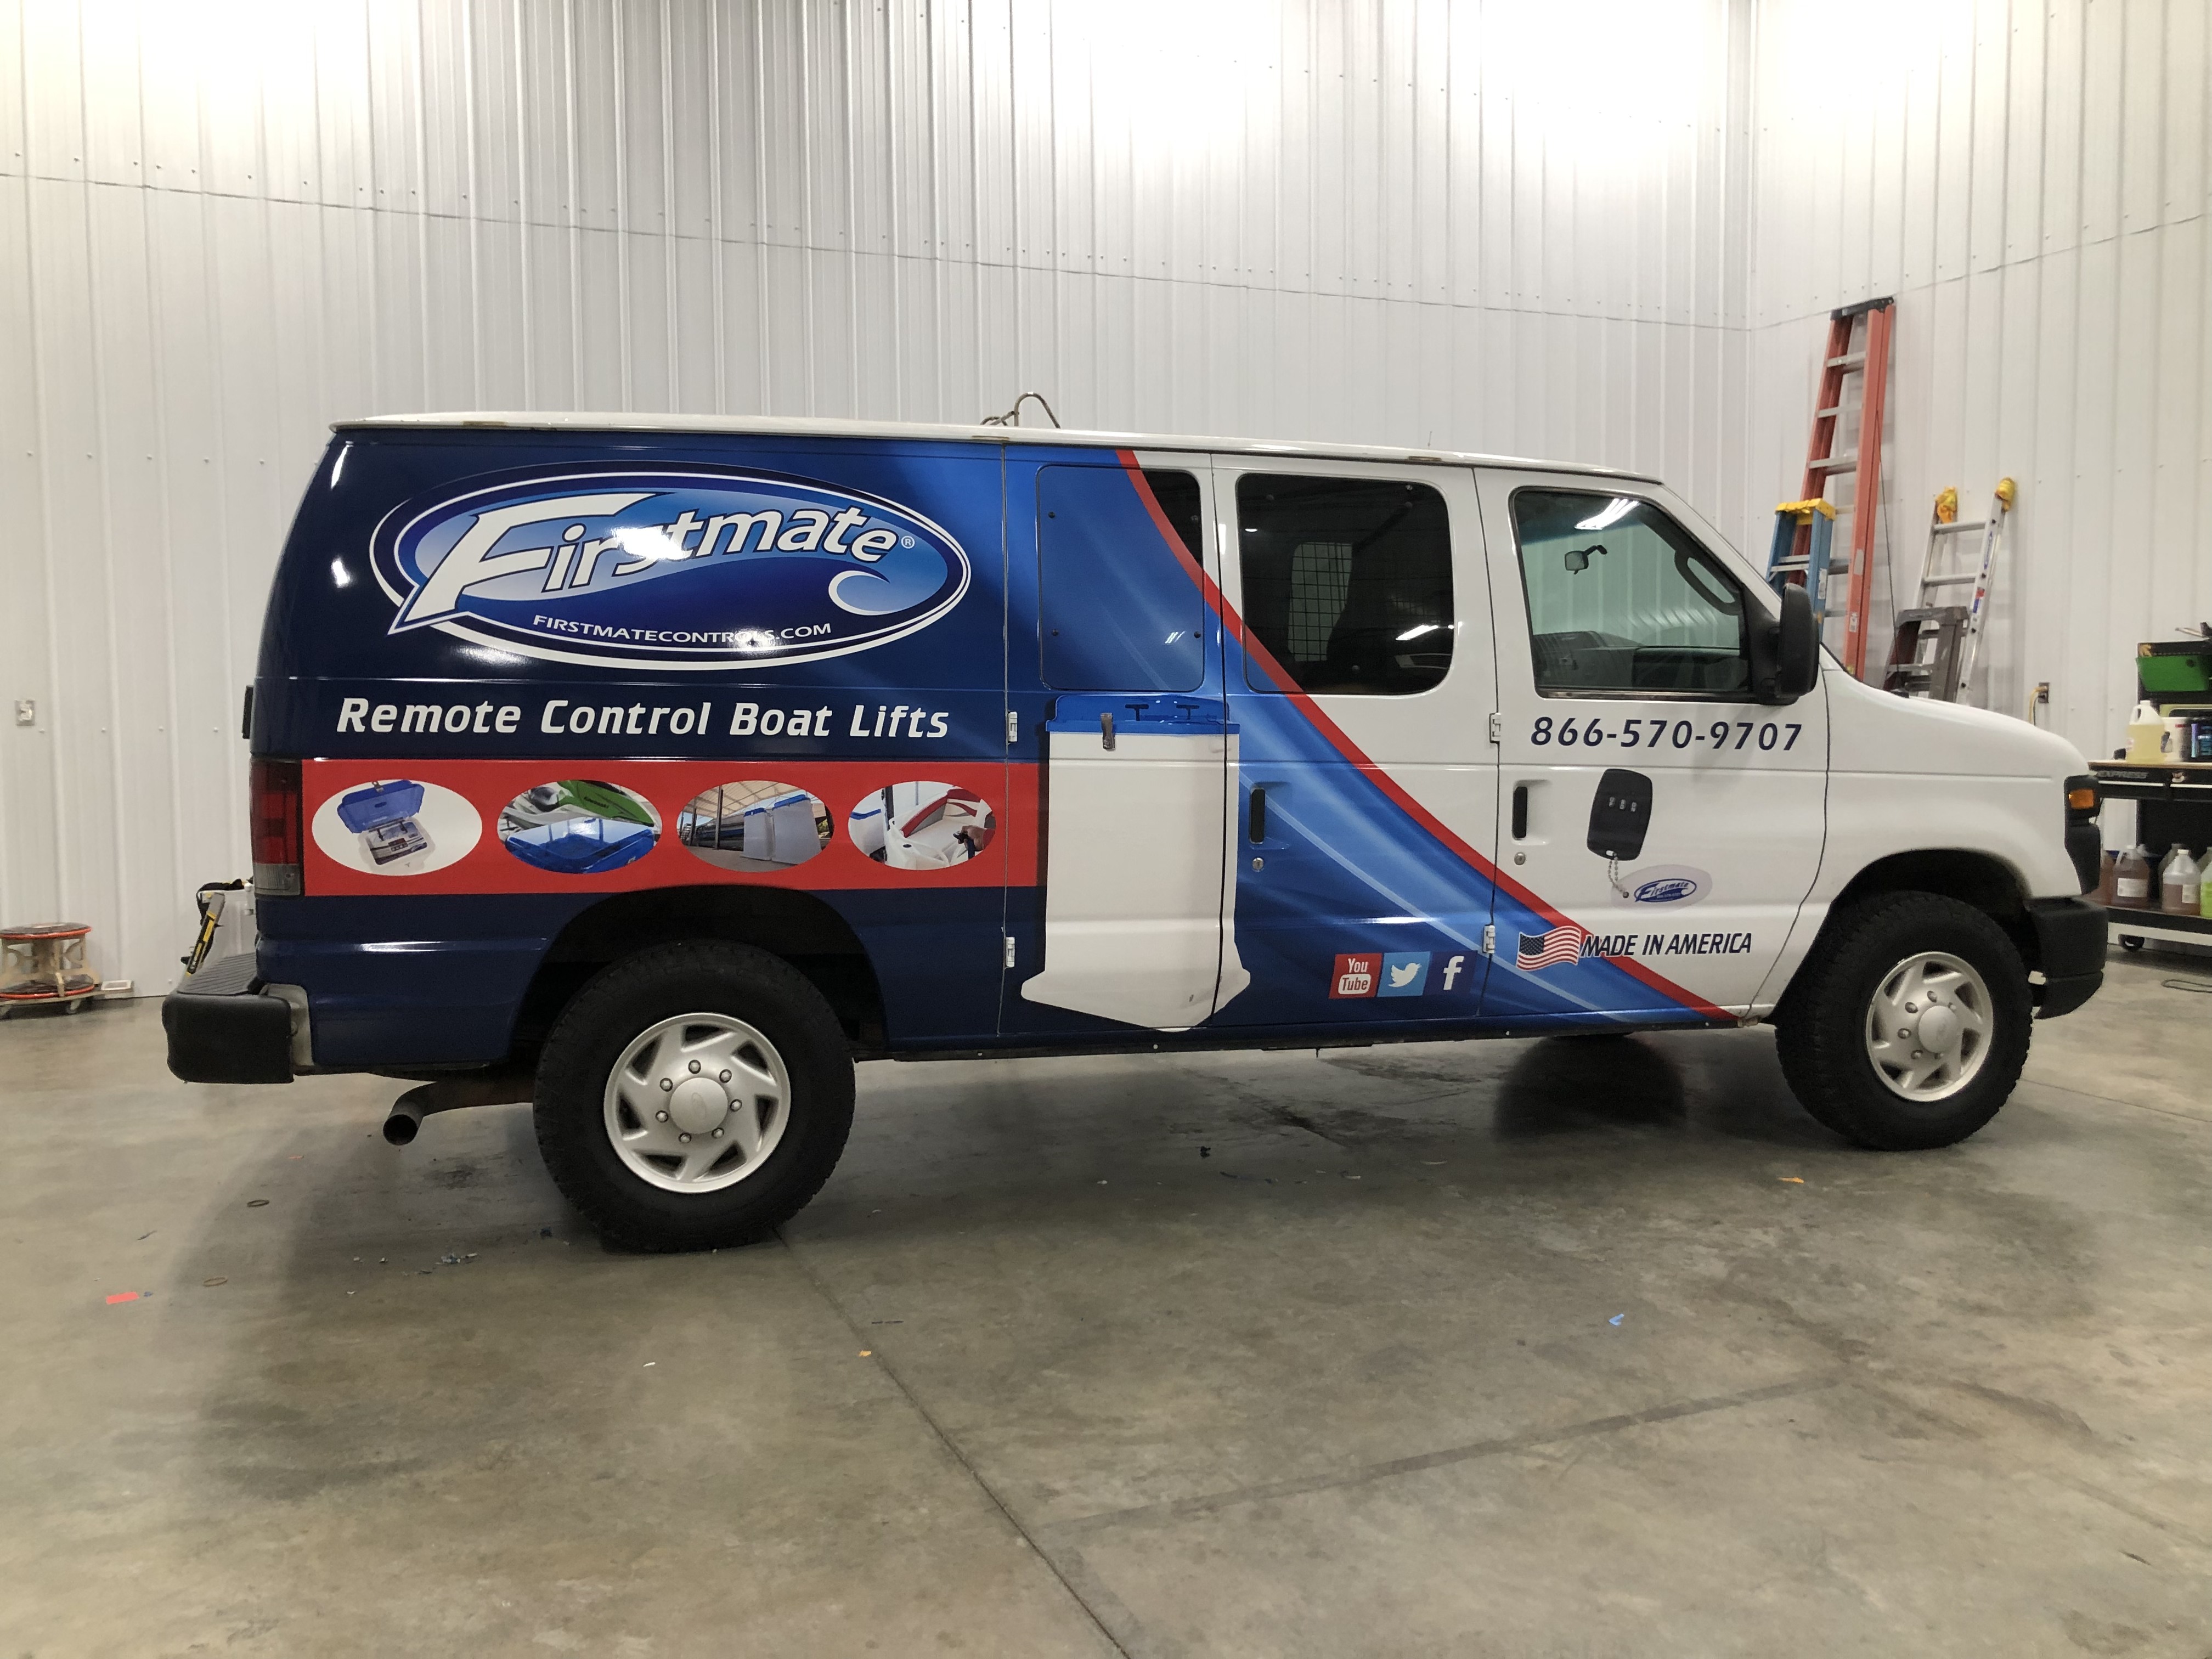 Partial Van Wrap for Firstmate Controls